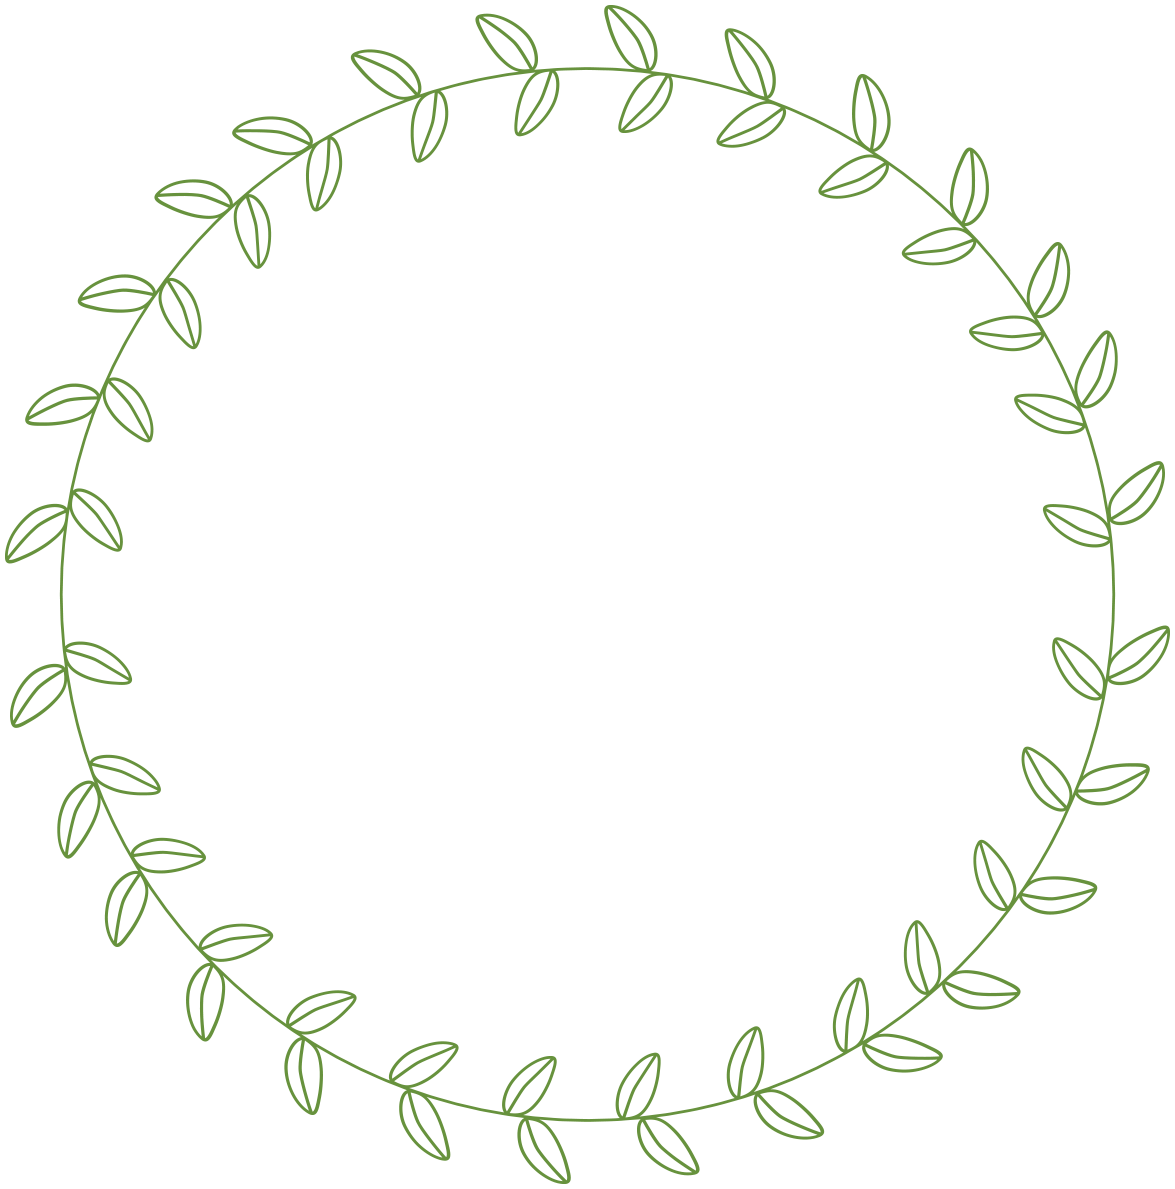 Lines clipart circle Borders free free Arrows Frames